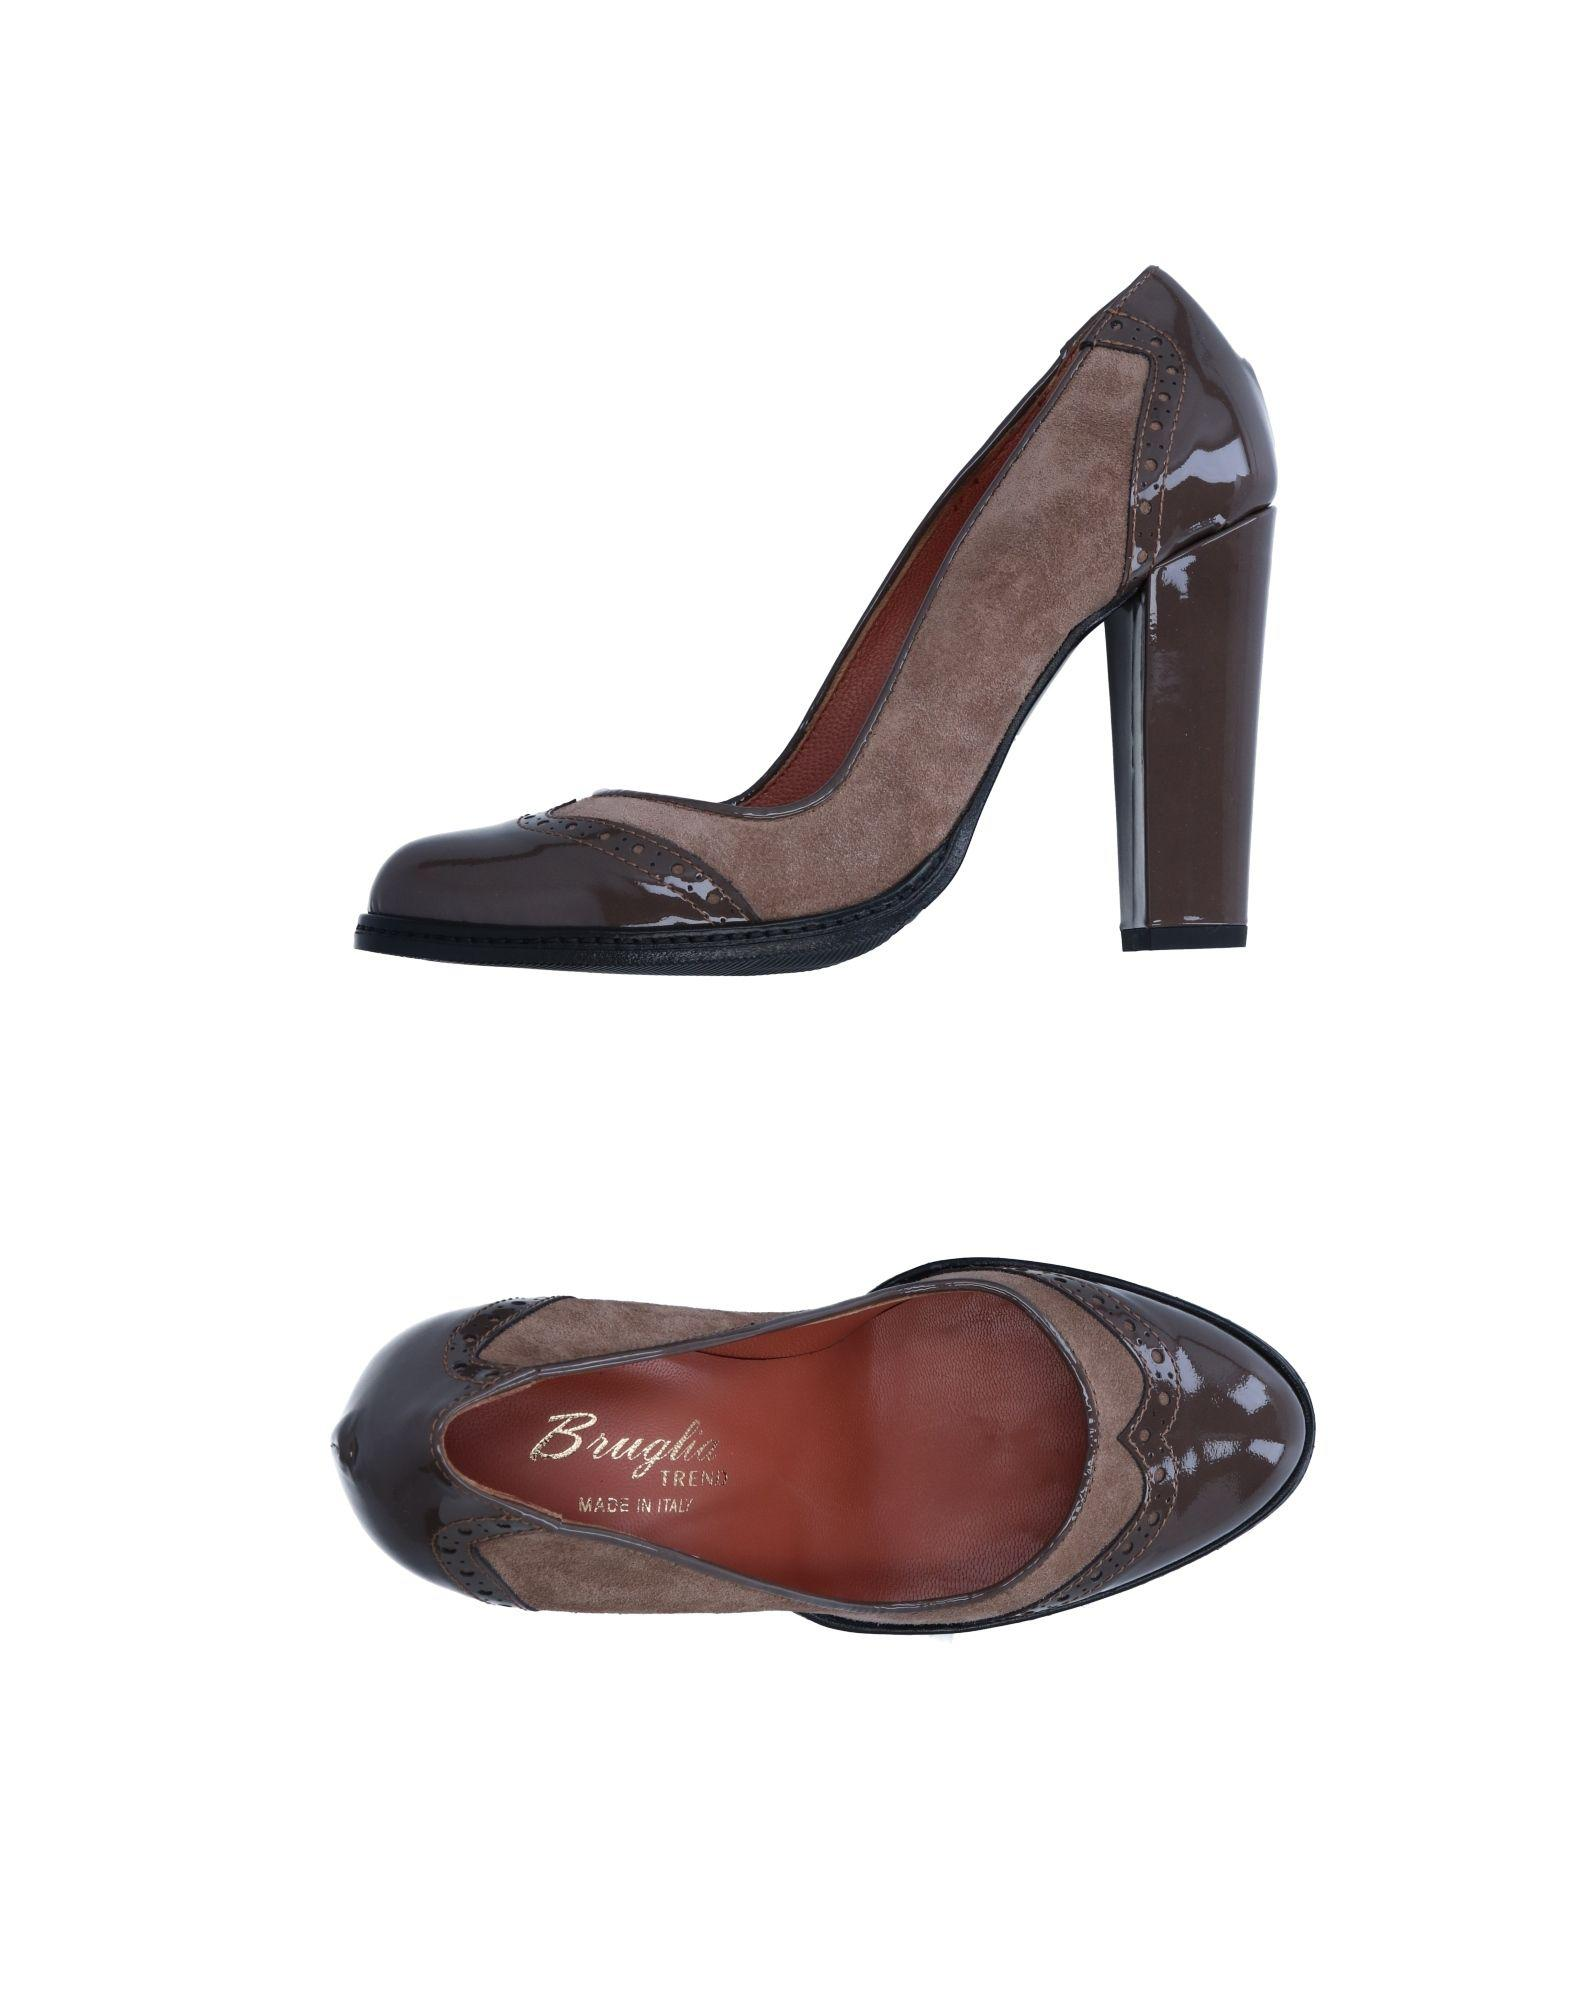 prices sale online for sale for sale F.LLI BRUGLIA Courts buy cheap Inexpensive cheap online sale browse NRMGb5n